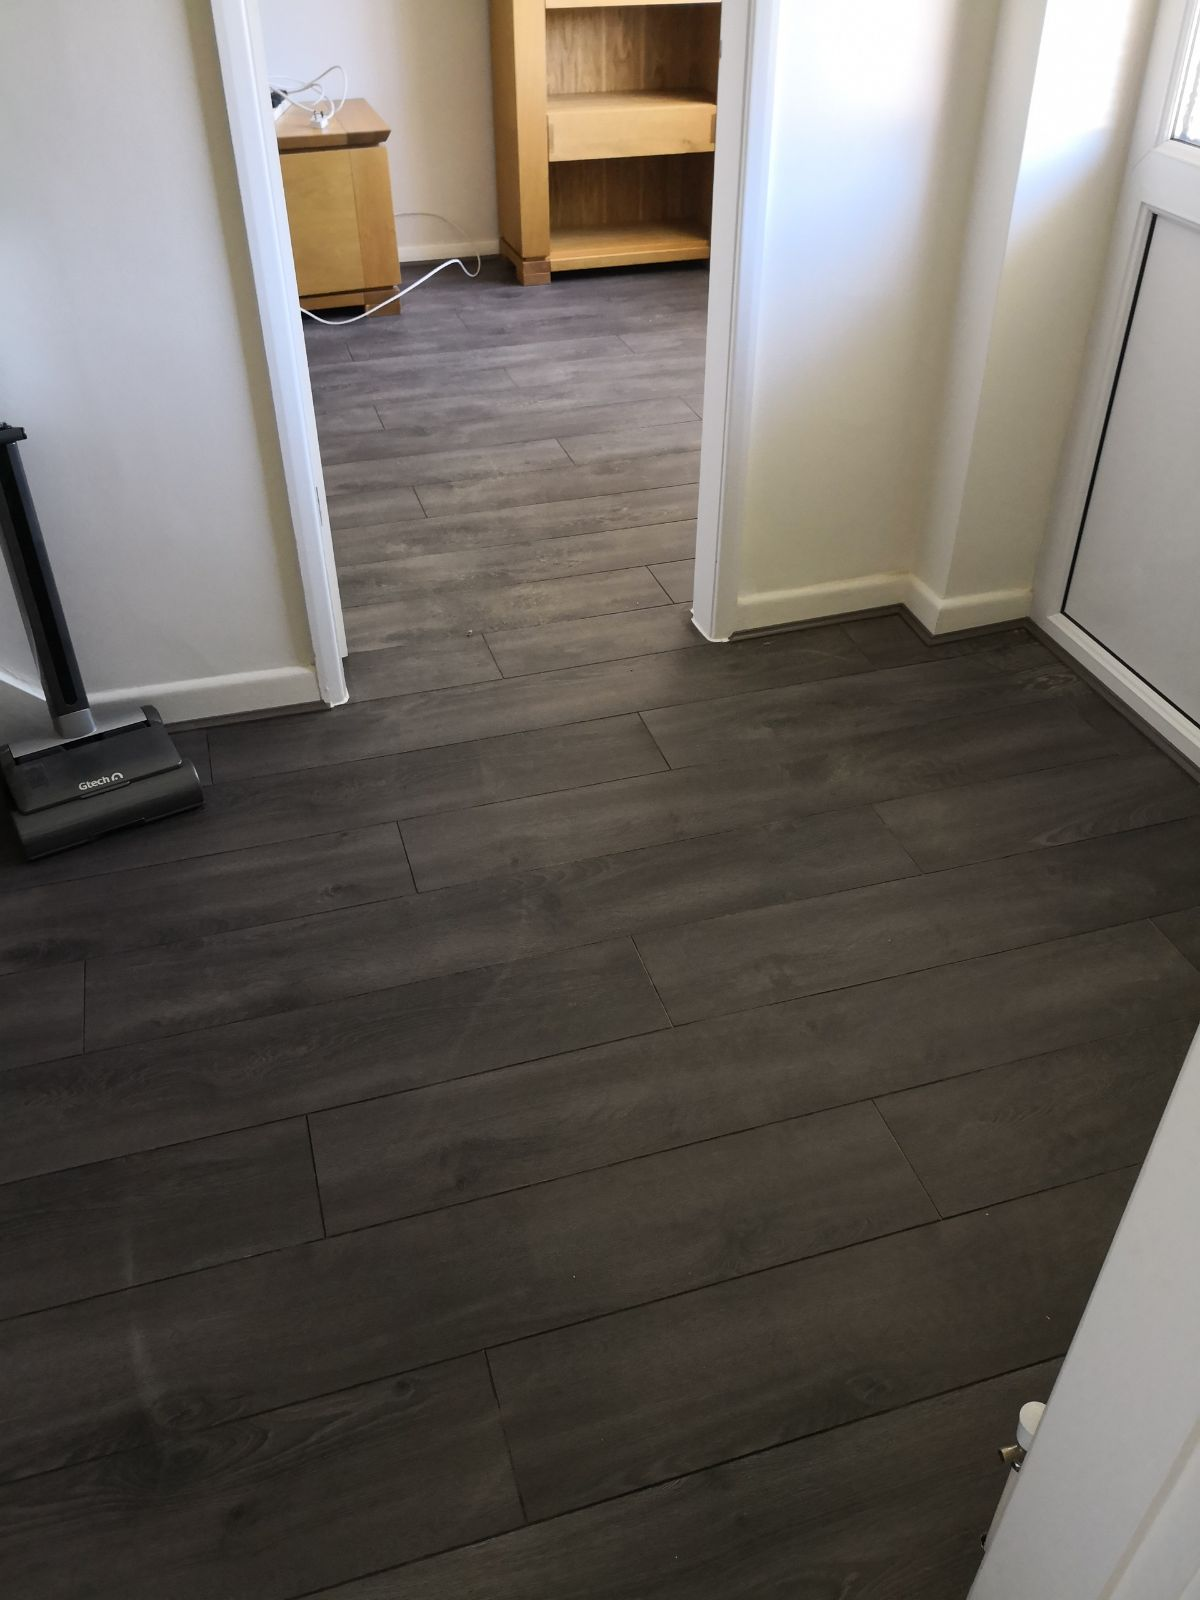 Laminat Shop Living Room Hall Laminate Flooring Installation The Carpet Shop